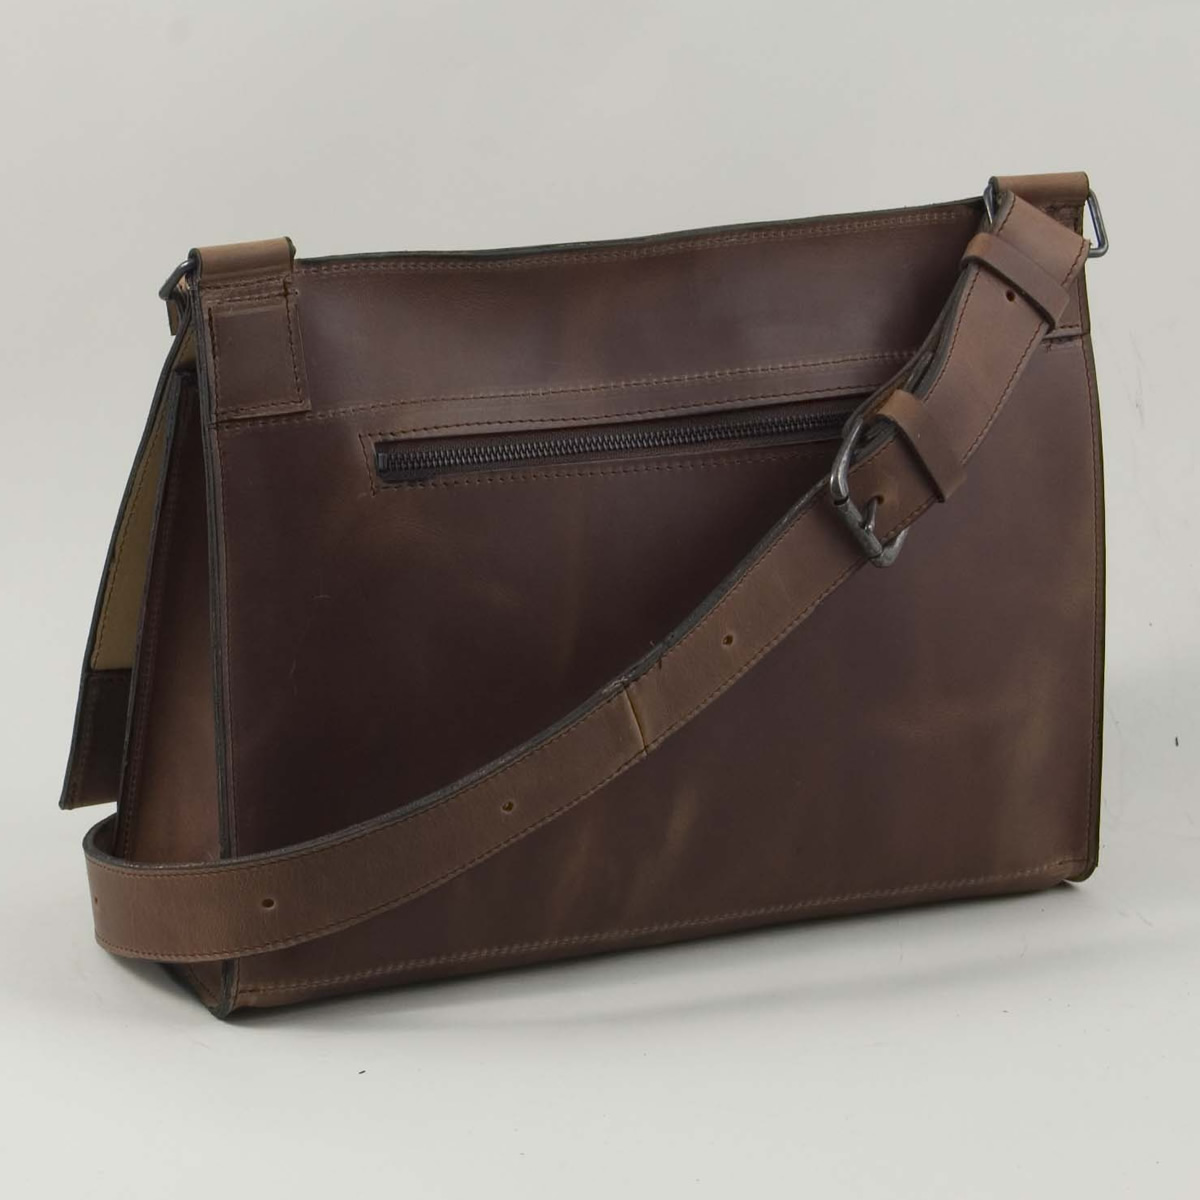 Student Satchel - Back